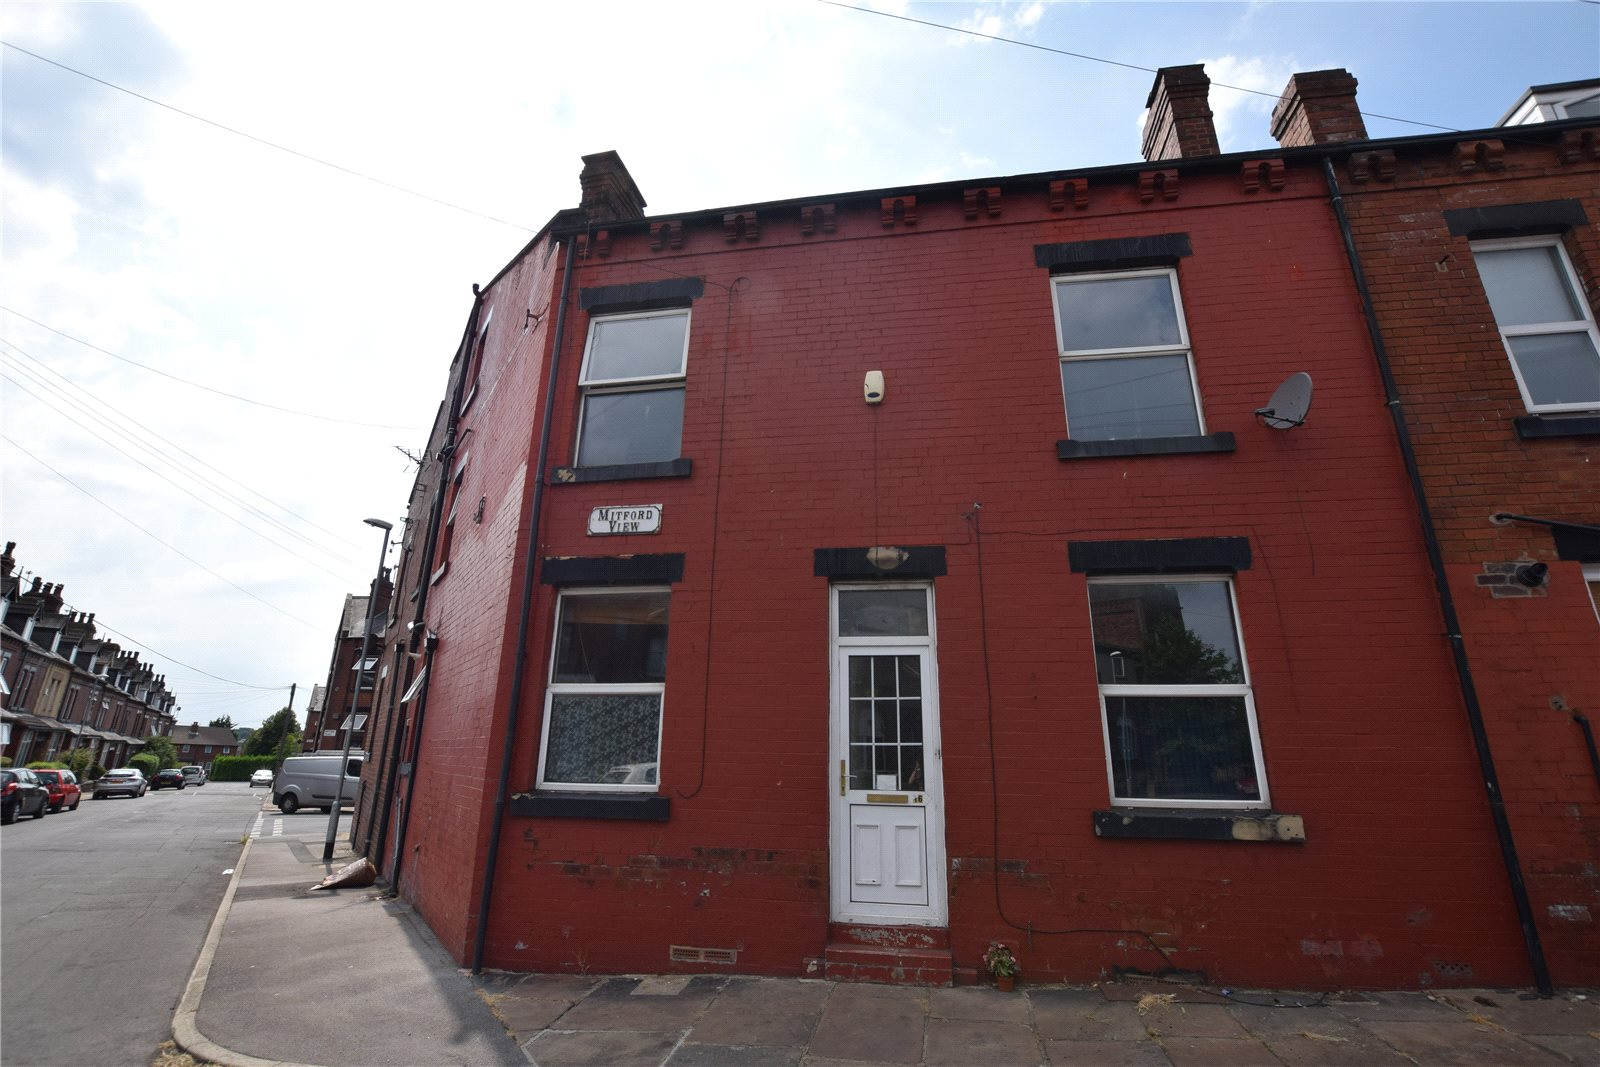 Property for sale in Worltey, exterior of terraced house